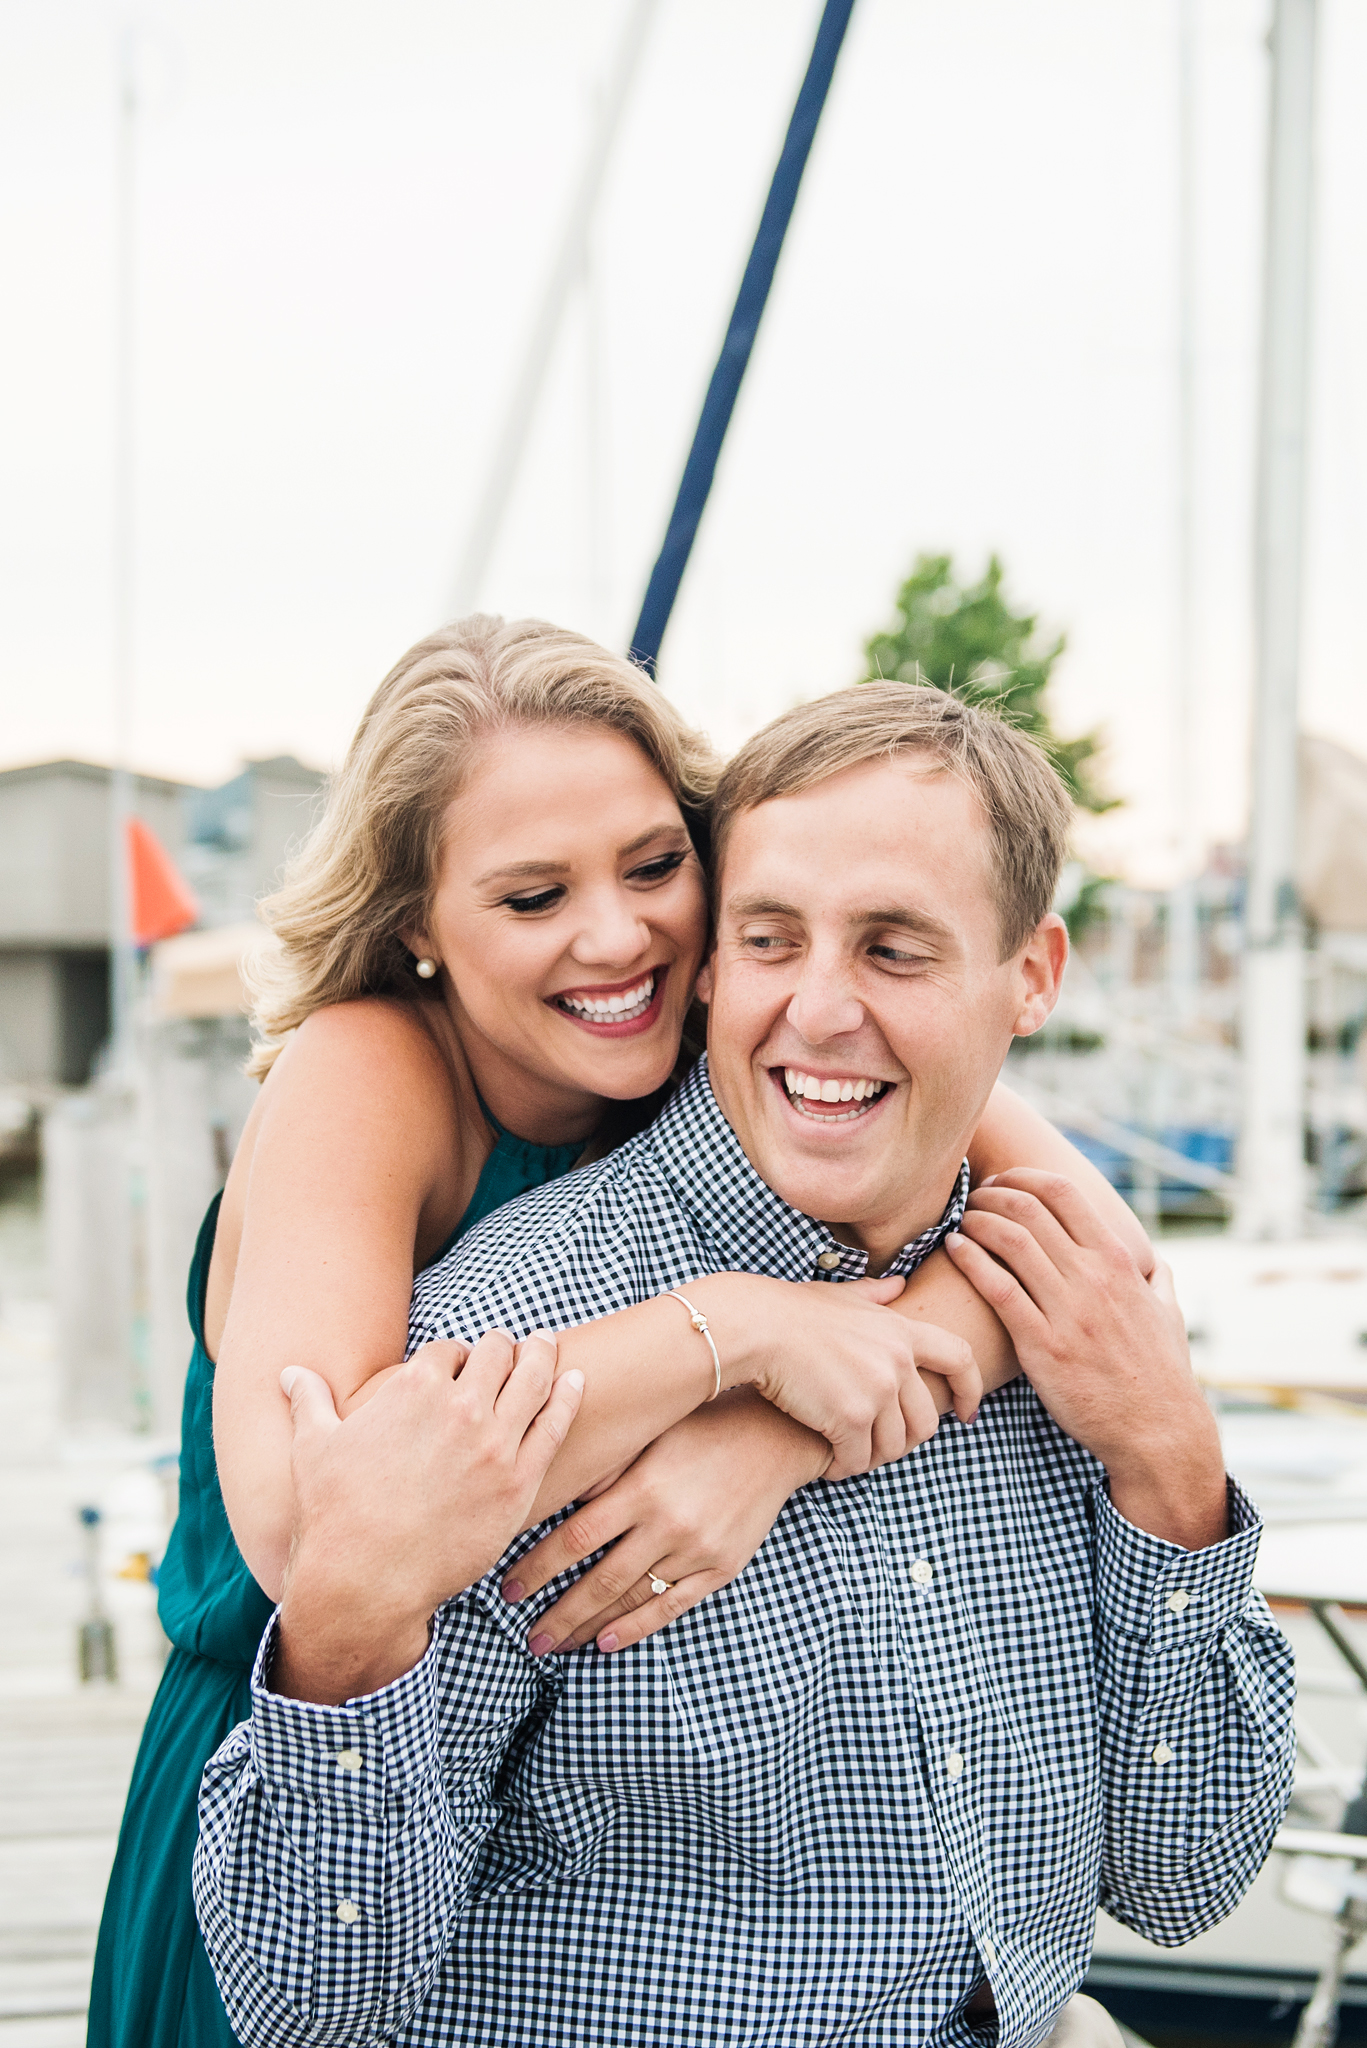 George_Eastman_House_Rochester_Yacht_Club_Rochester_Engagement_Session_JILL_STUDIO_Rochester_NY_Photographer_DSC_8219.jpg